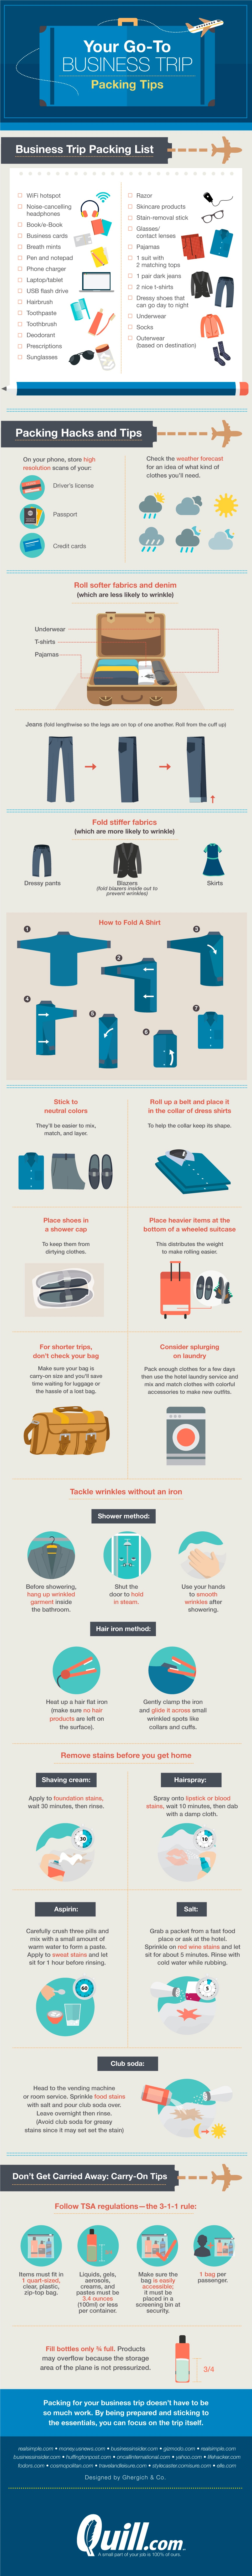 business-trip-packing-tips-infographic.jpg